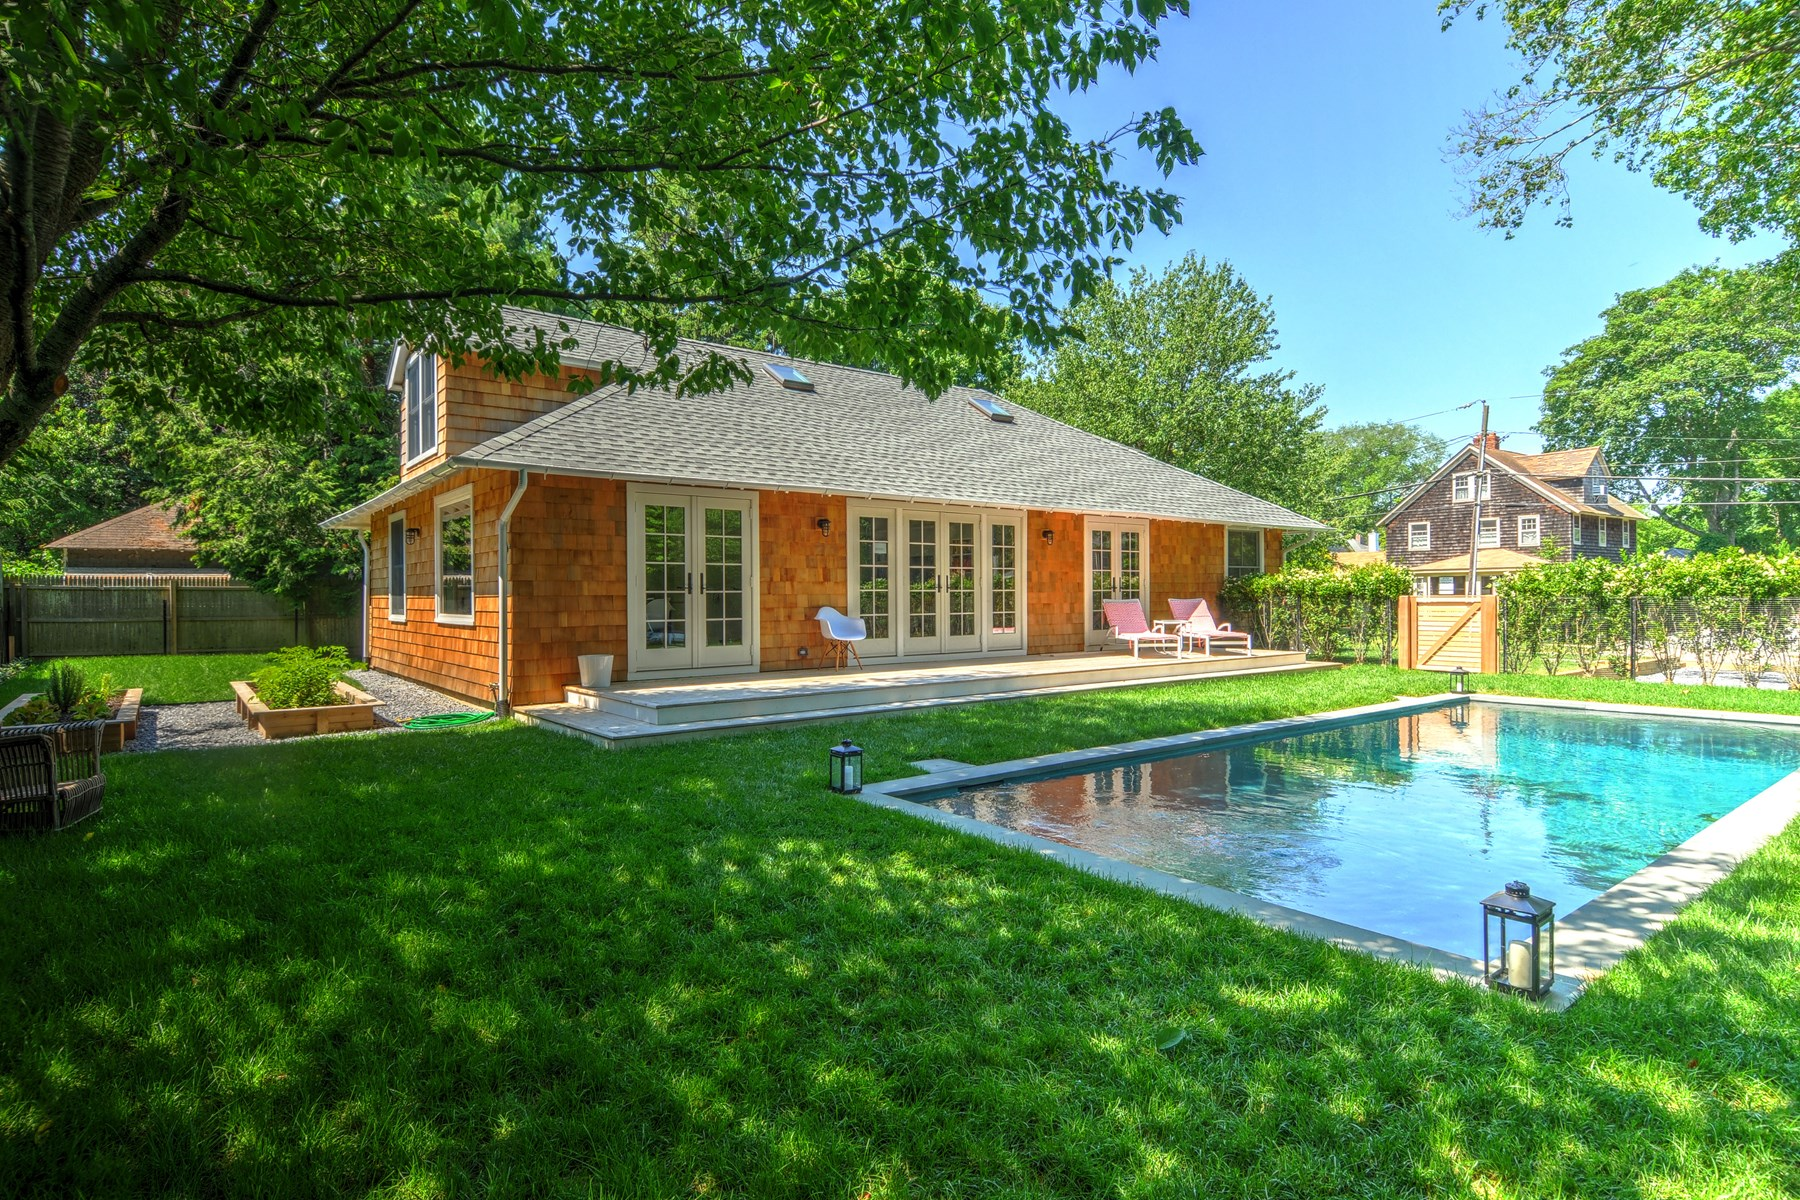 Single Family Home for Rent at East Hampton Village Convenience 8 Cooper Lane East Hampton, New York 11937 United States